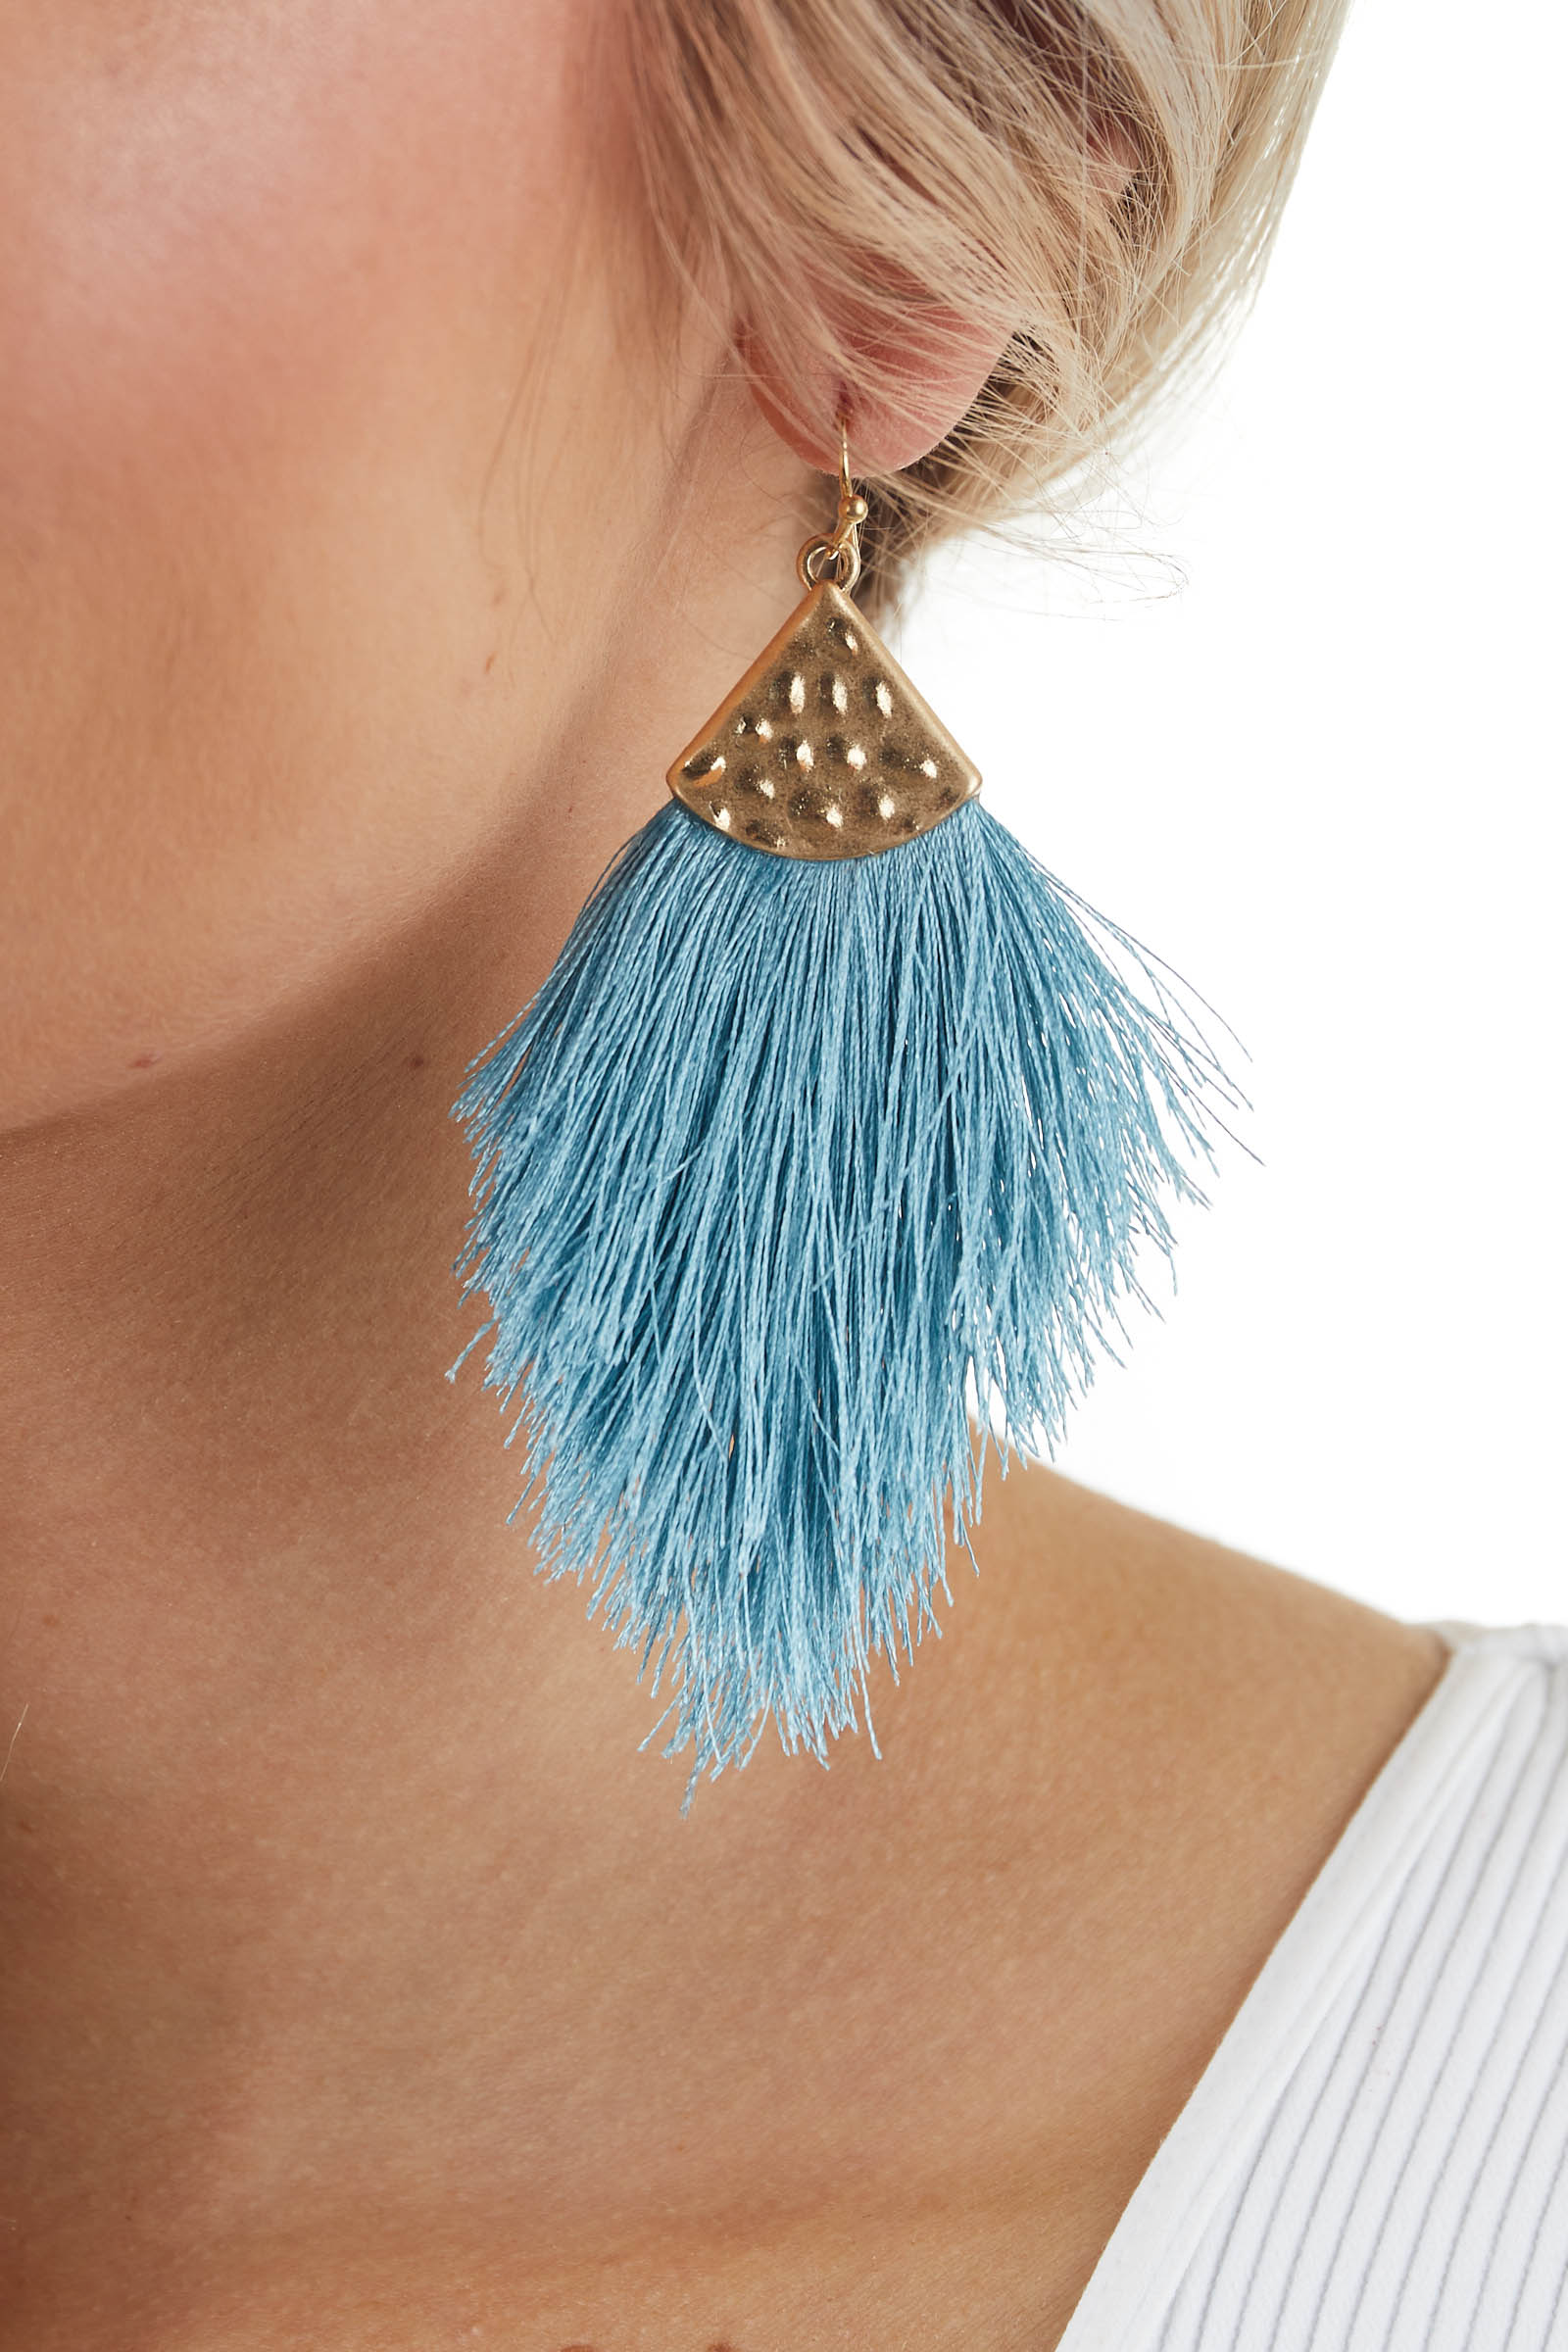 Ocean Blue Tassel Dangle Earrings with Gold Hammered Metal